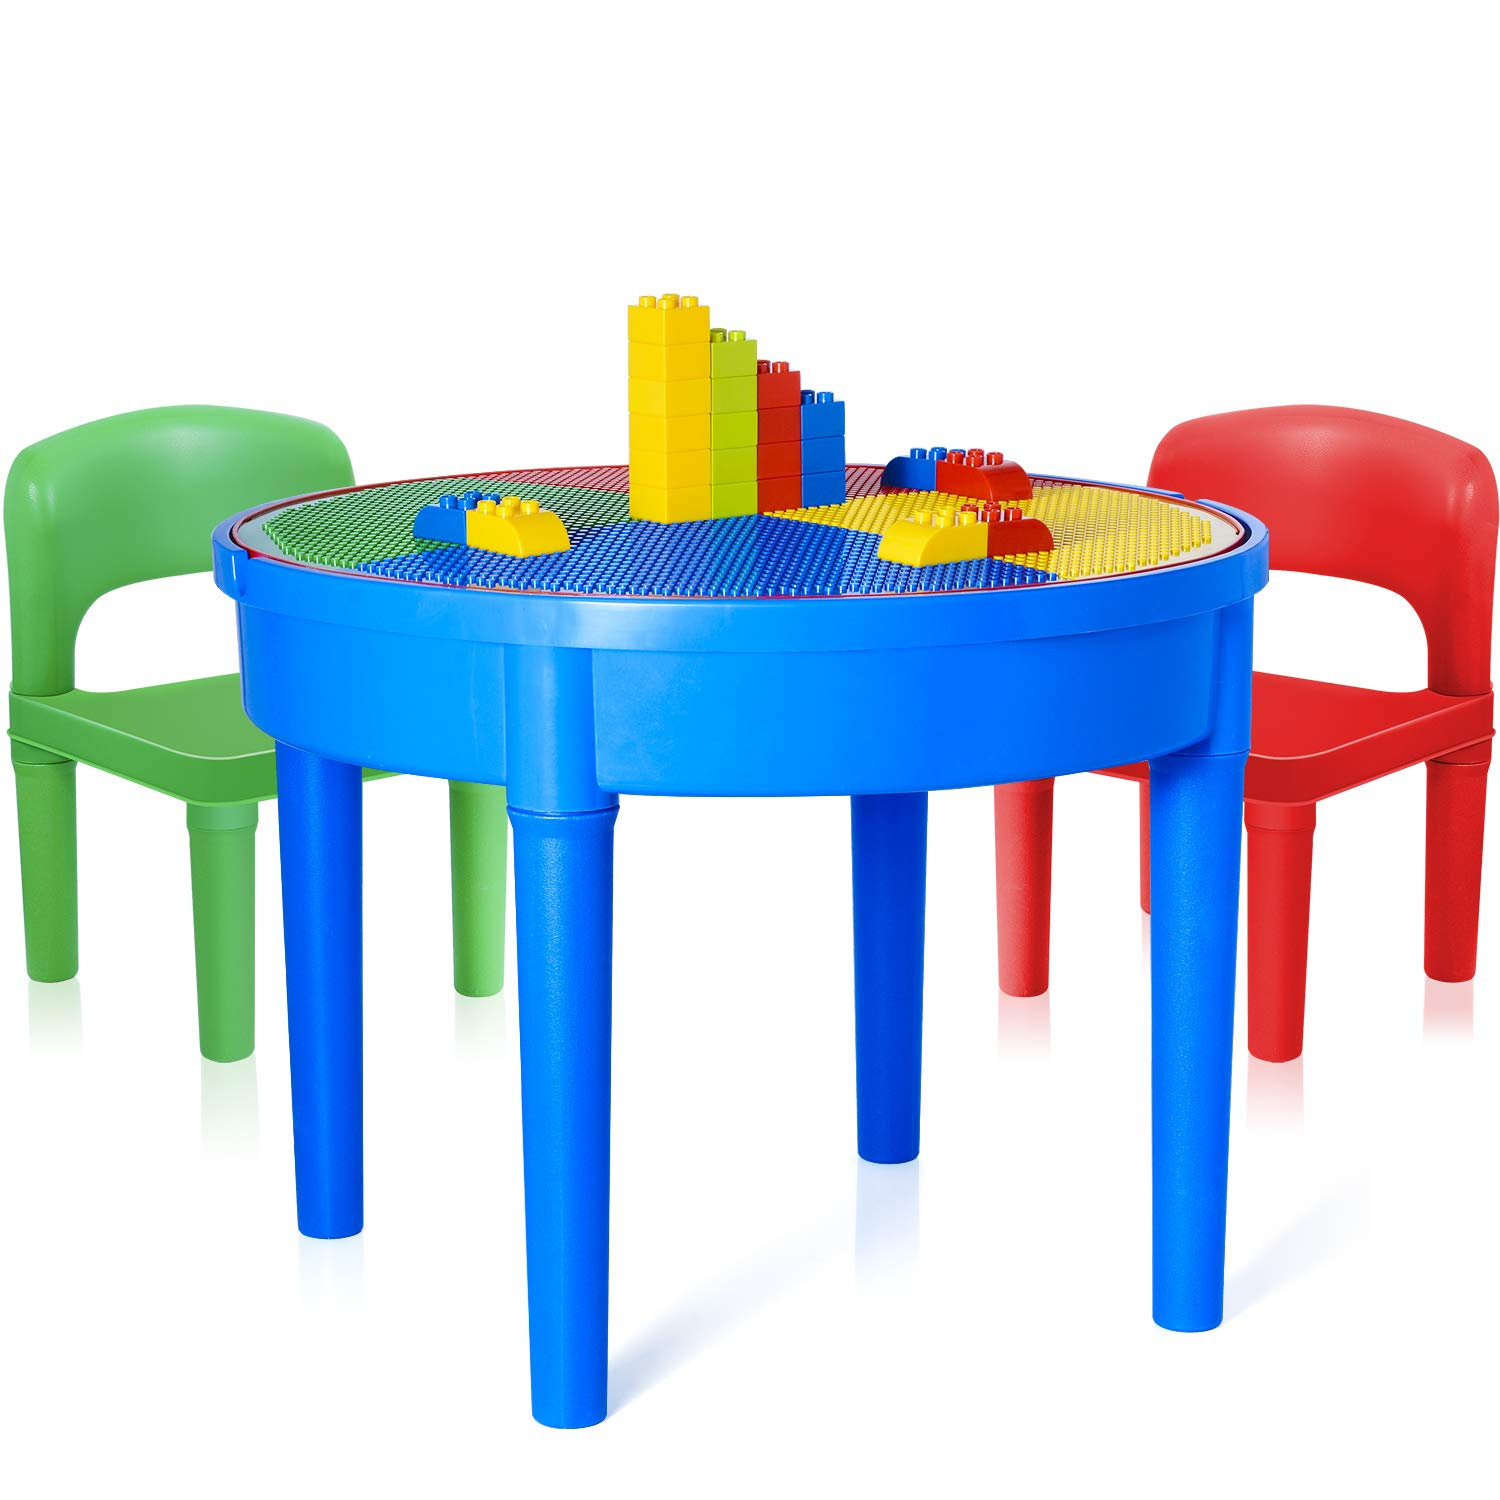 Wonderful Kids Building Bricks Base Plates 10'x10' Compatible with All Major Brands, for Play Table or Displaying 6 Pack Fei Er Ke